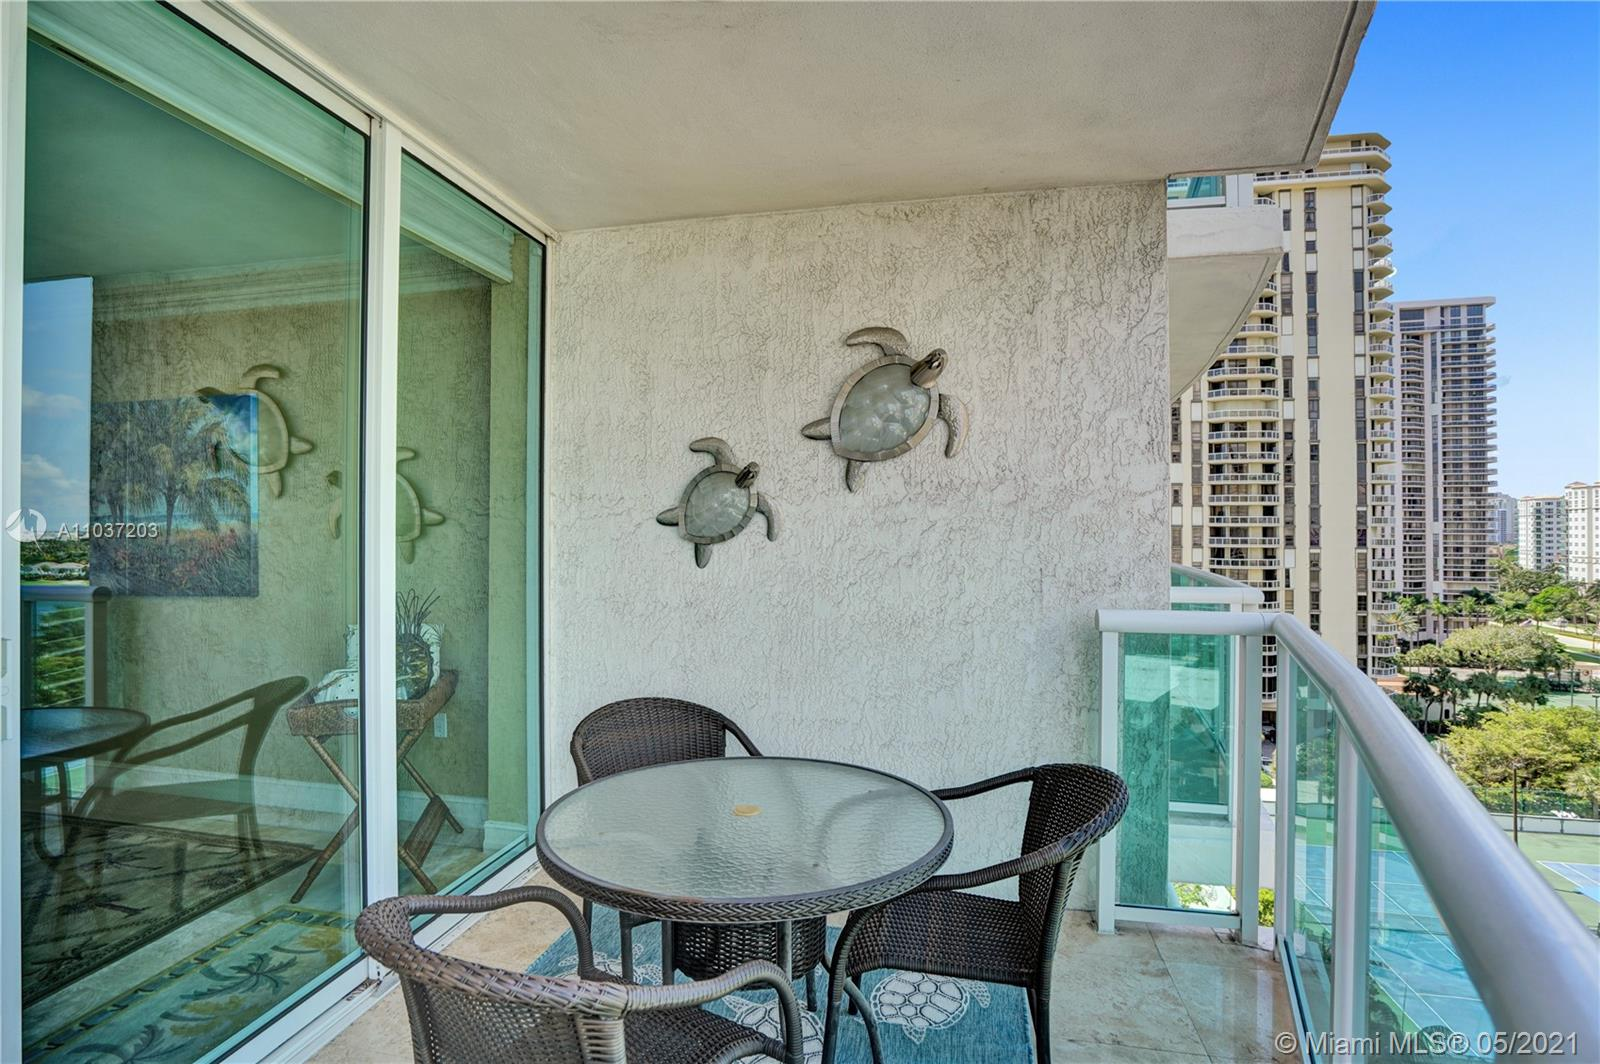 Photo of 20201 Country Club Dr #1006, Aventura, Florida, 33180 - Water views!